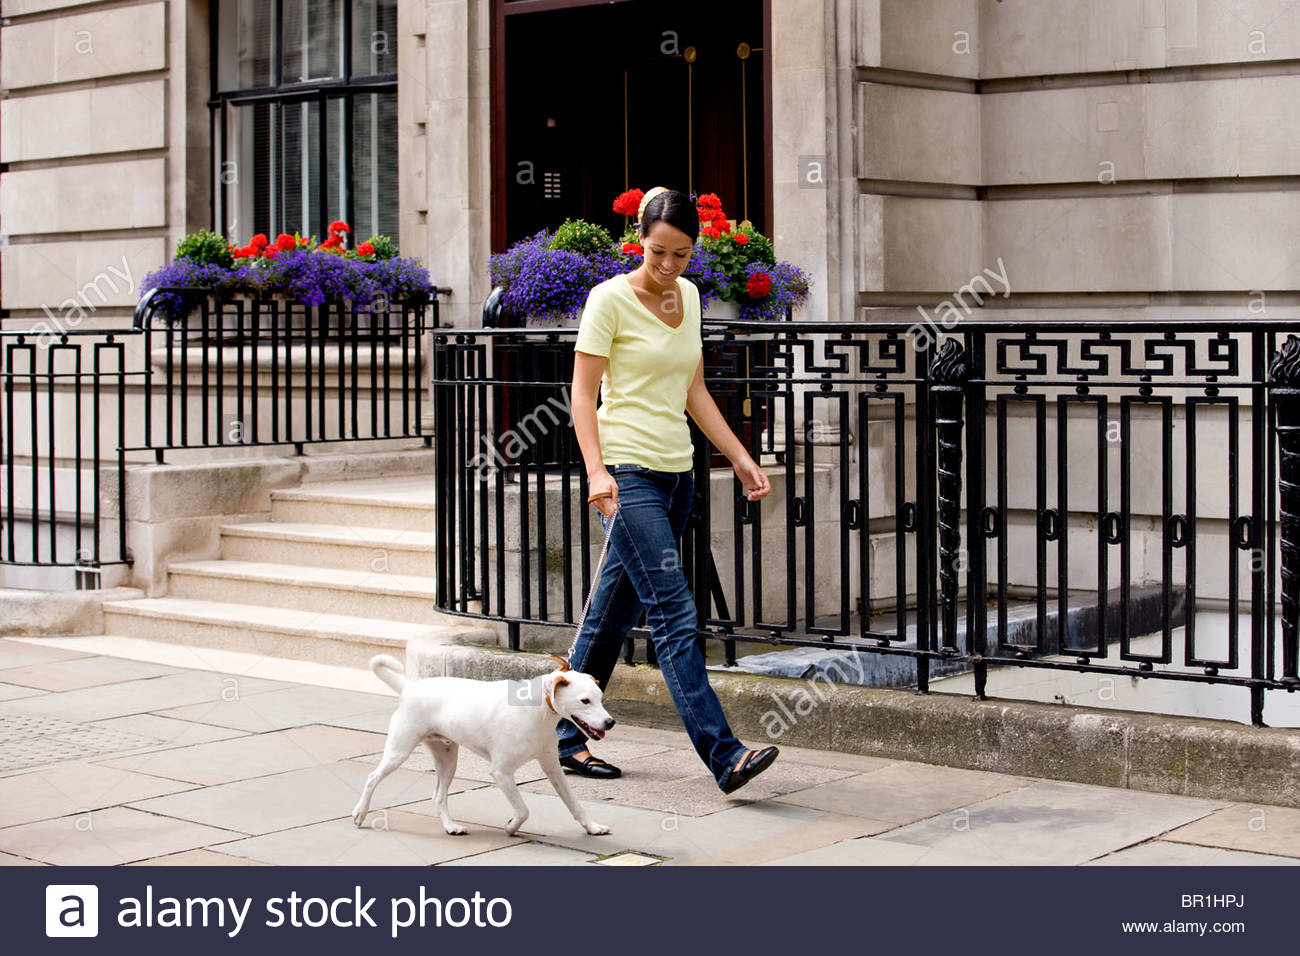 A young woman walking her dog in the street - Stock Image